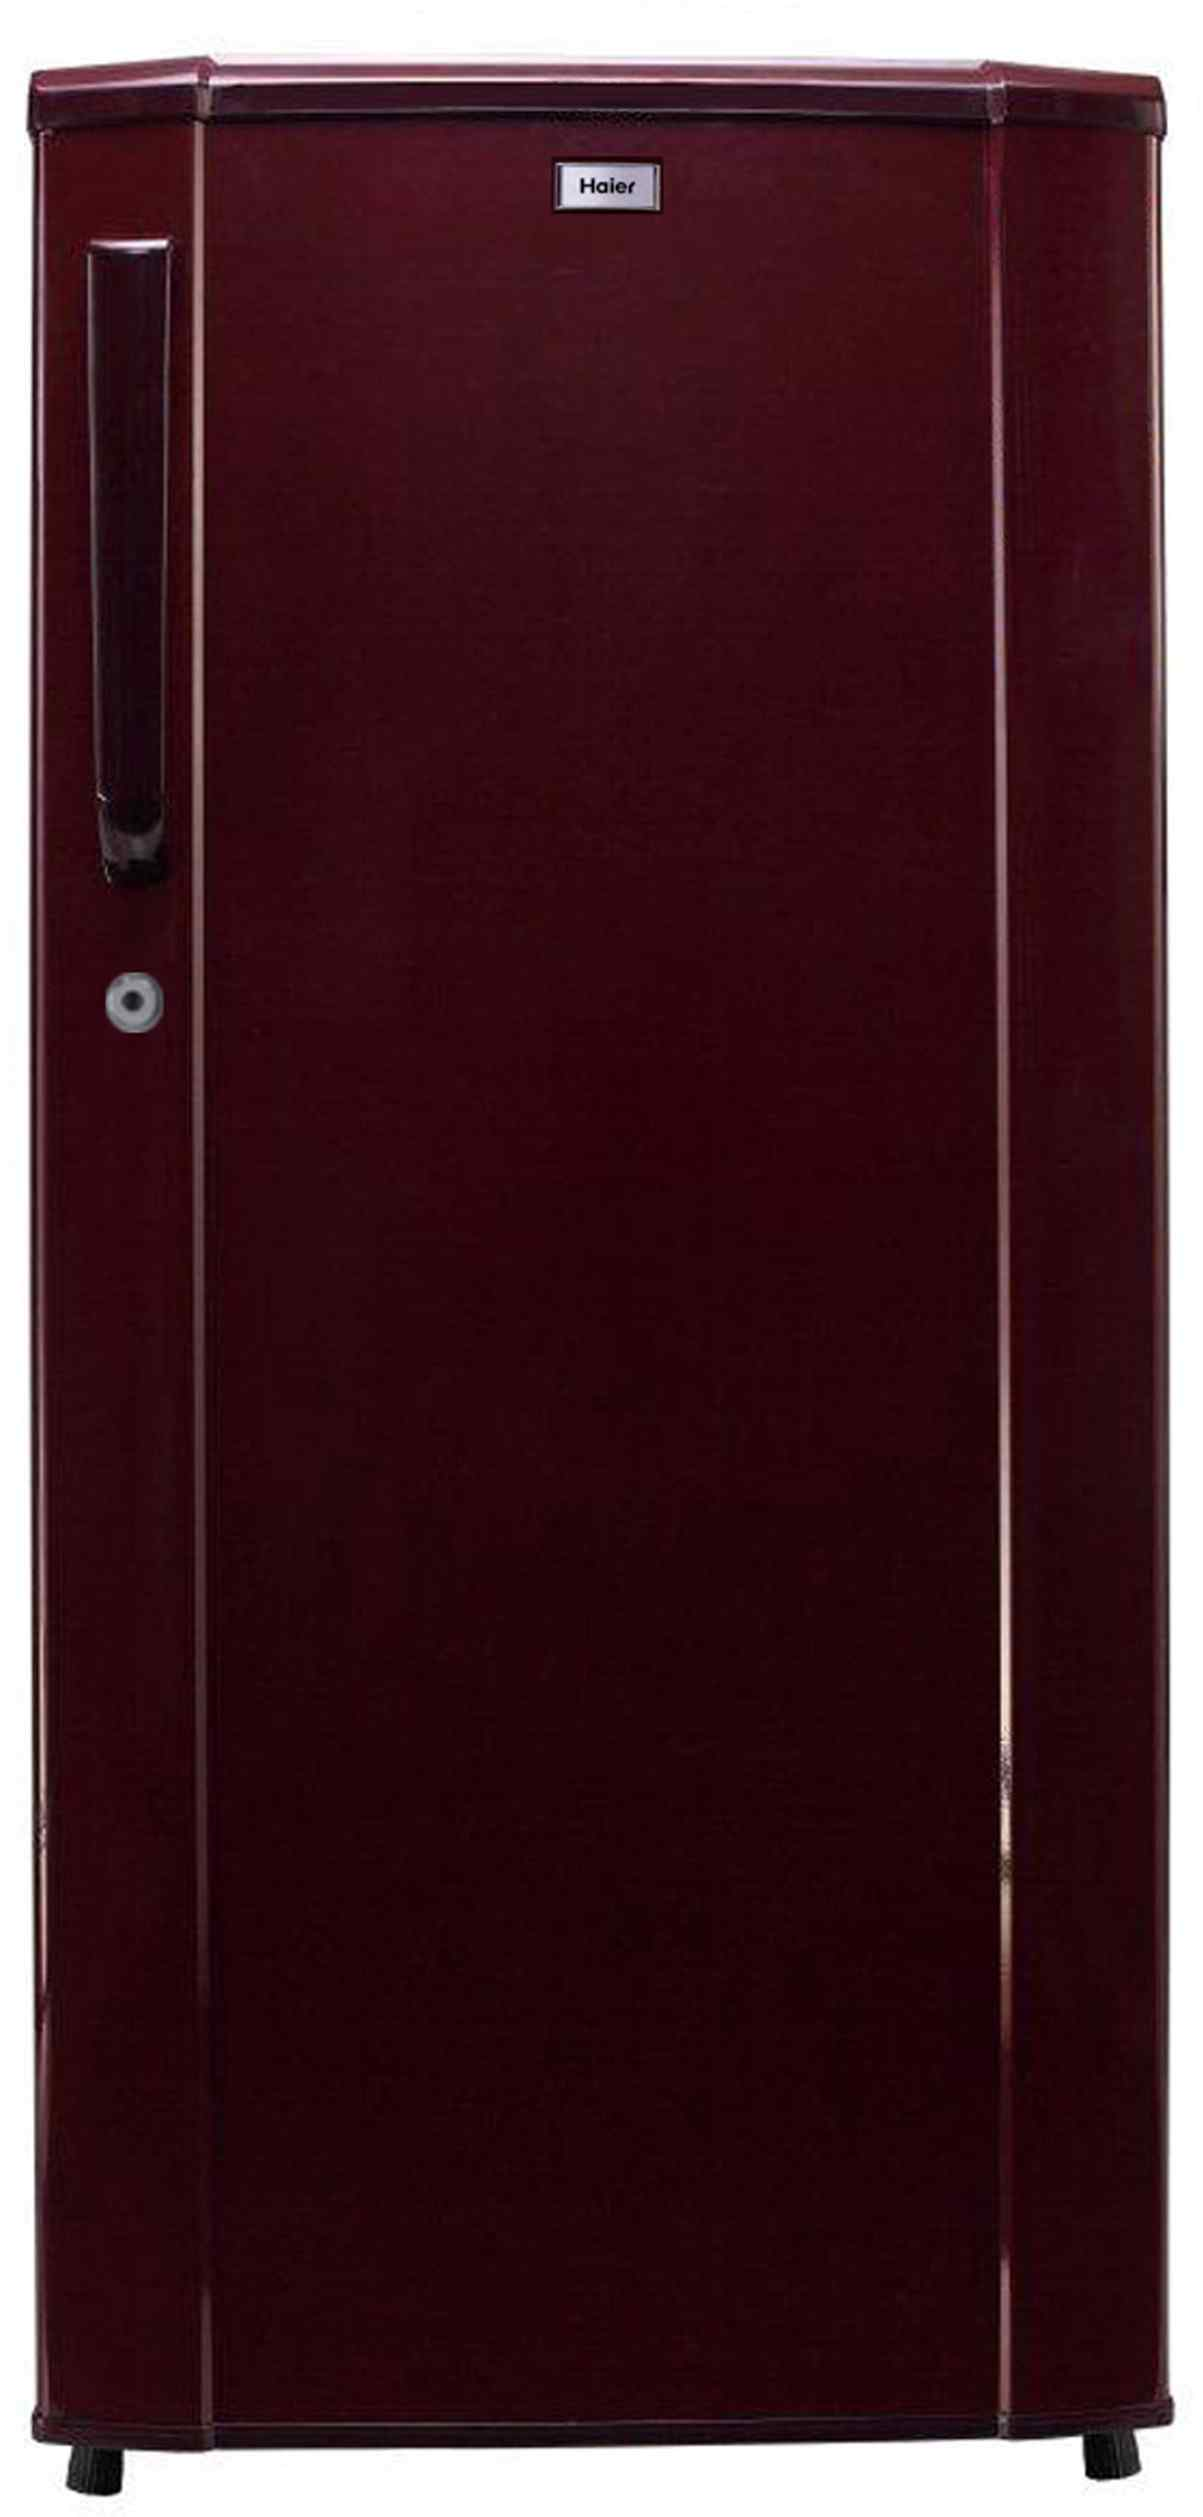 Best price on Haier HRD-2015SR-H 4S 181 Litres Single Door Refrigerator in India